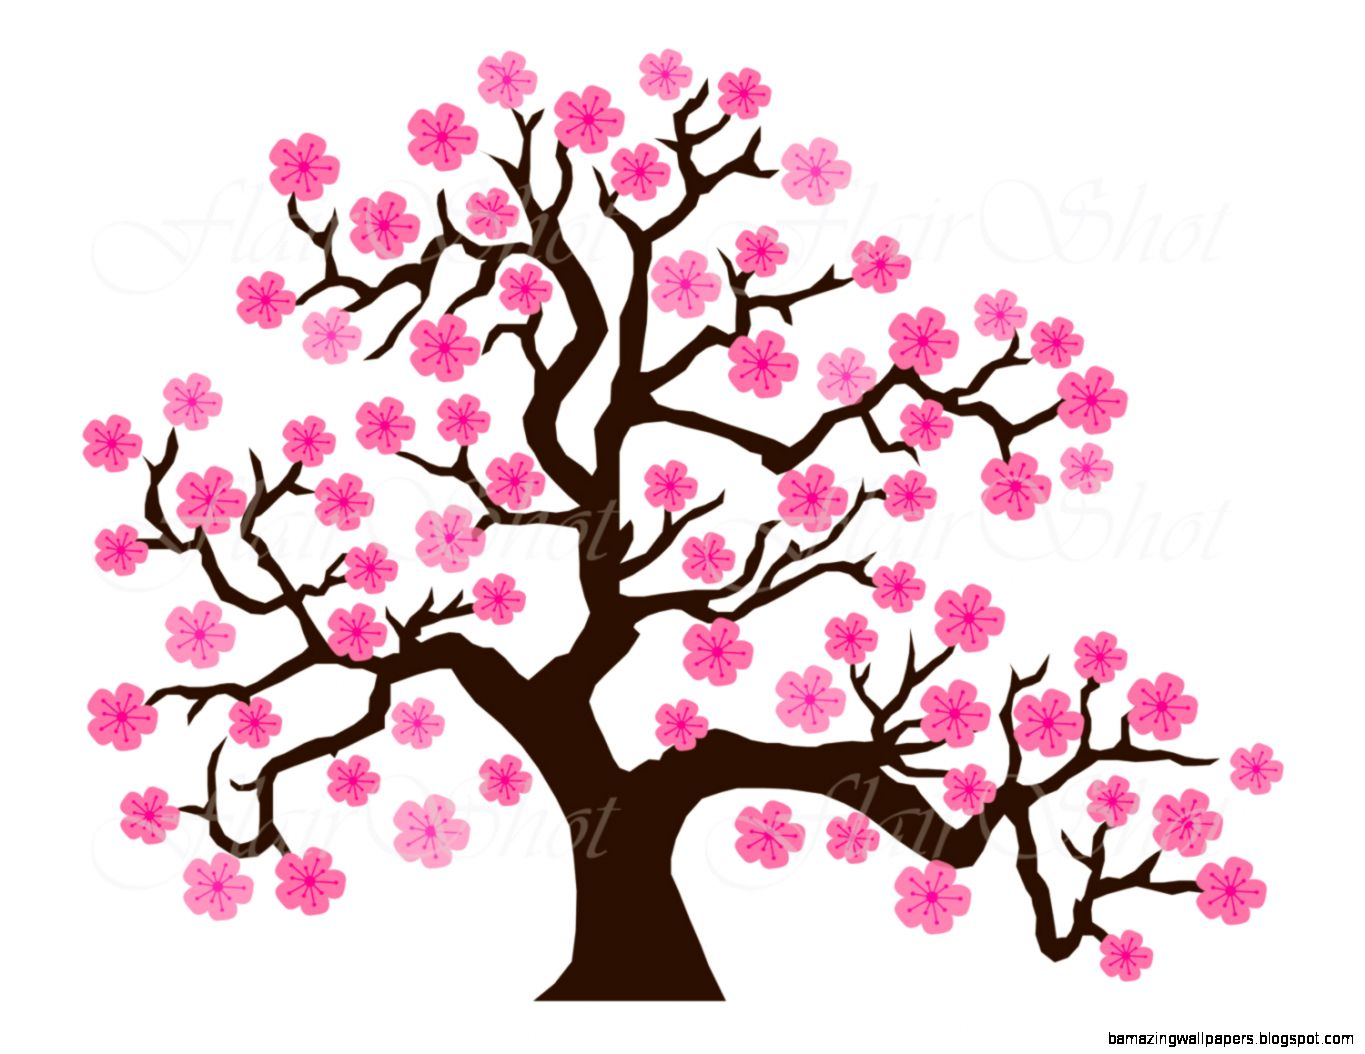 Digital Clip Art Pink Cherry Blossom Tree Clipart by Flairshot